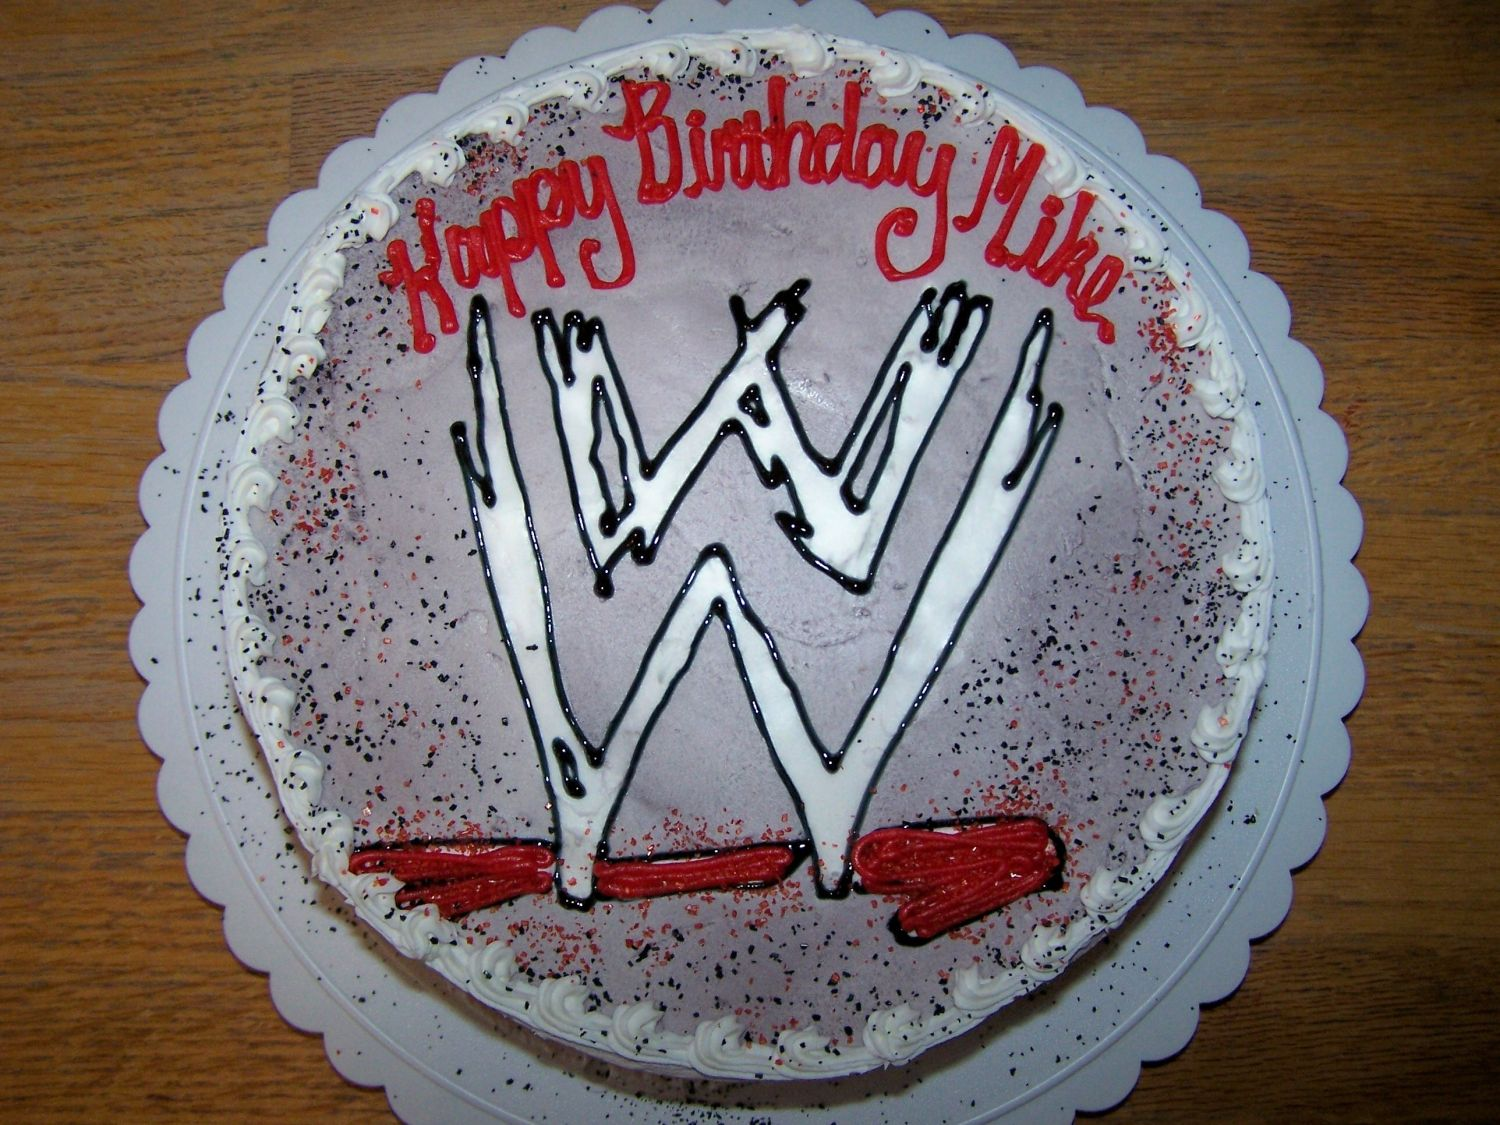 Pleasant Wwe Cakes Decoration Ideas Little Birthday Cakes Personalised Birthday Cards Cominlily Jamesorg